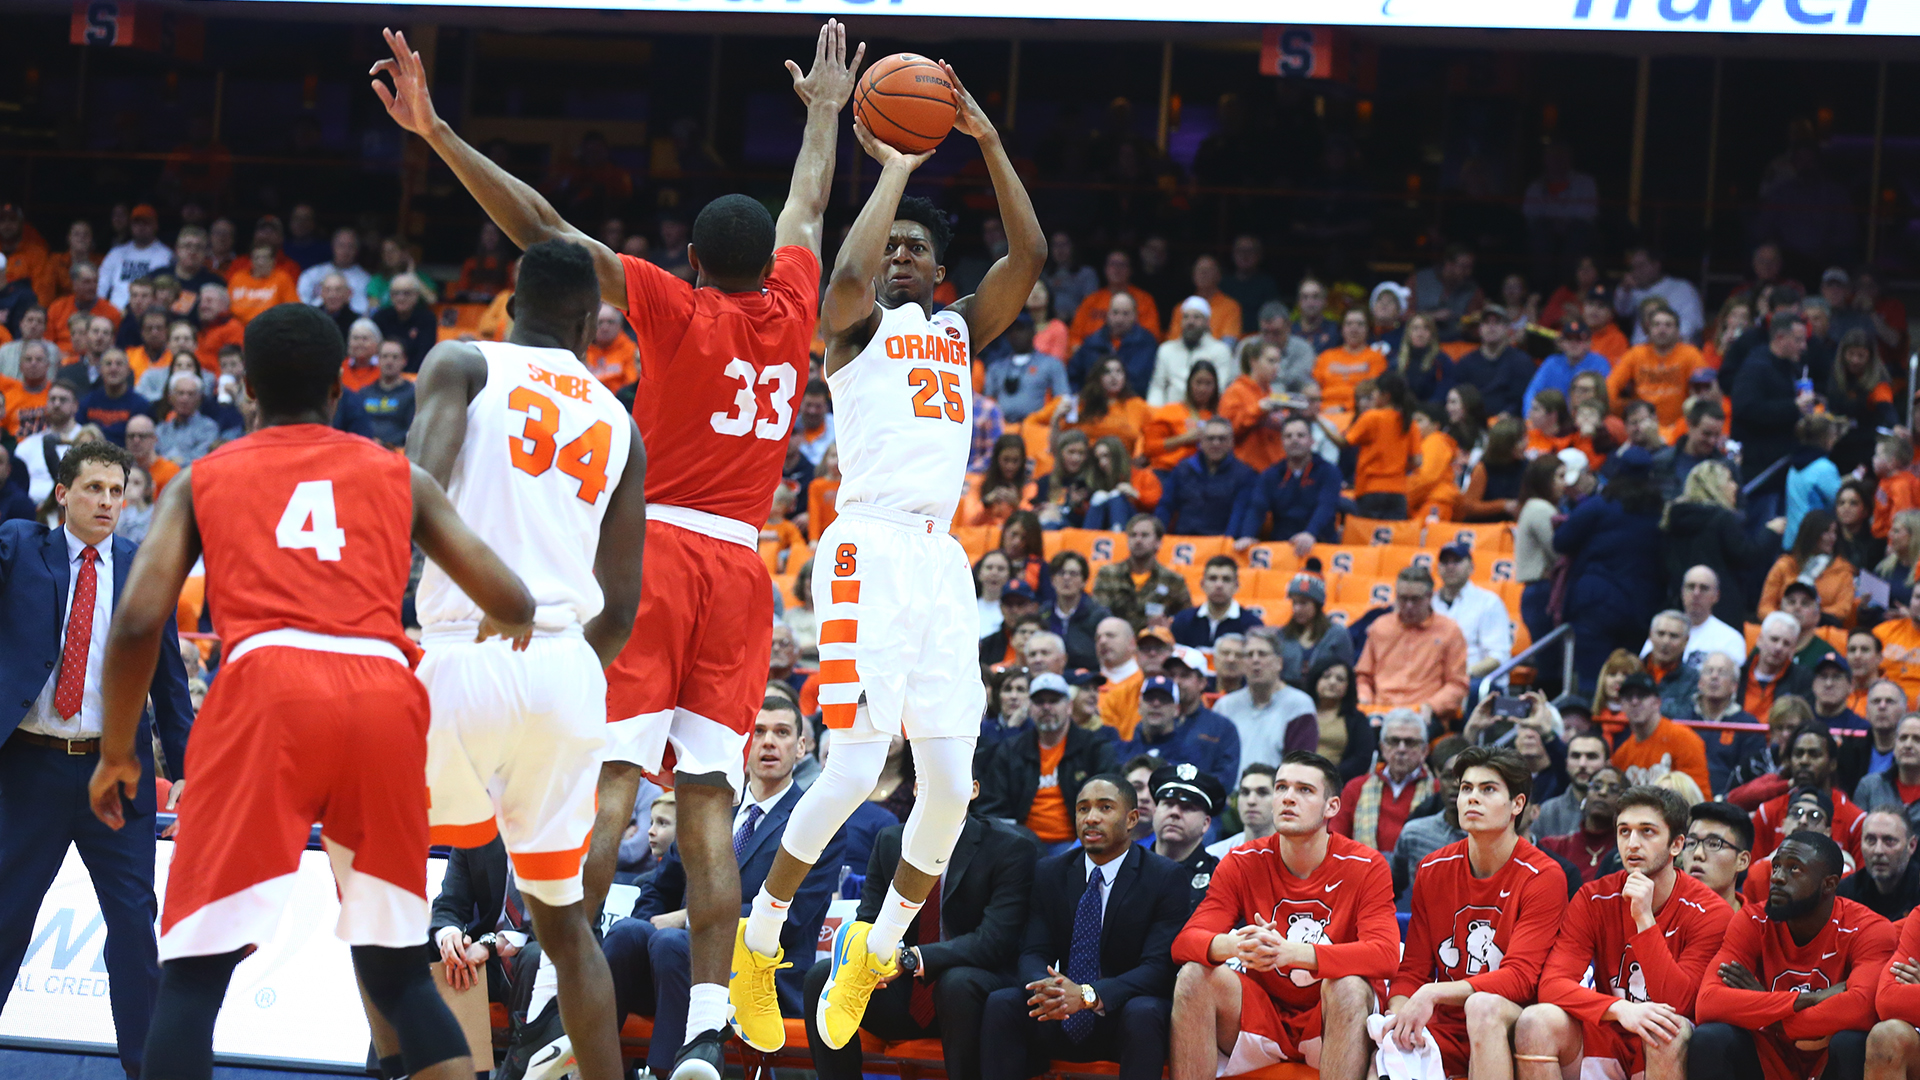 Battle leads Syracuse to 63-55 win over Cornell (full coverage)